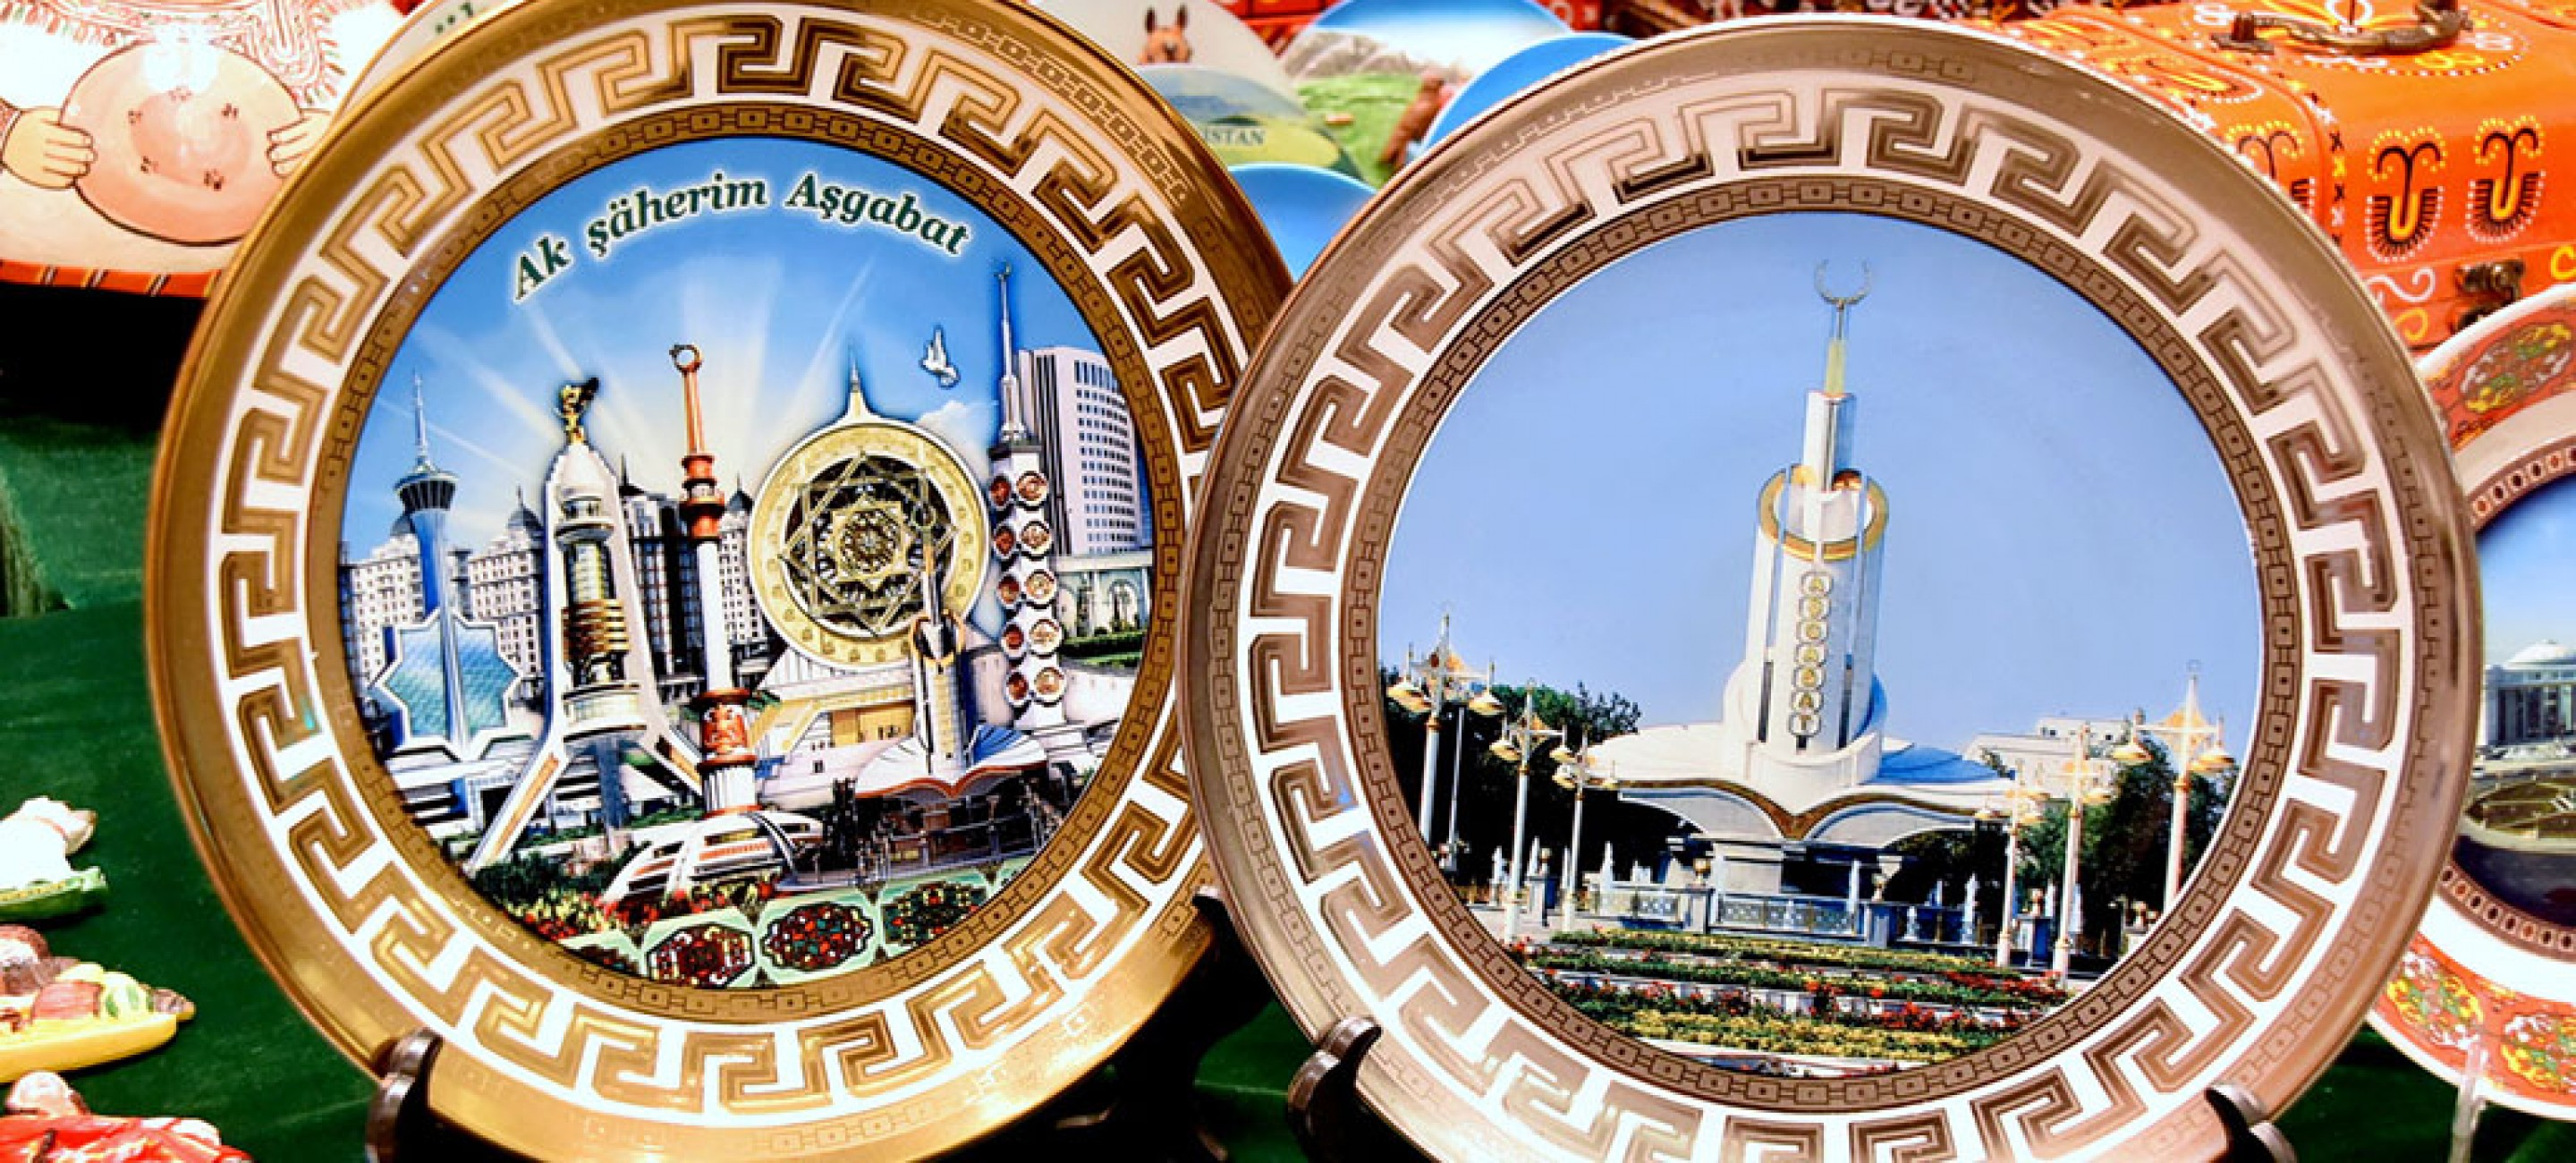 "THE XVII INTERNATIONAL UNIVERSAL EXHIBITION ""WHITE CITY - ASHGABAT"" STARTED ITS WORK IN THE CAPITAL OF TURKMENISTAN"